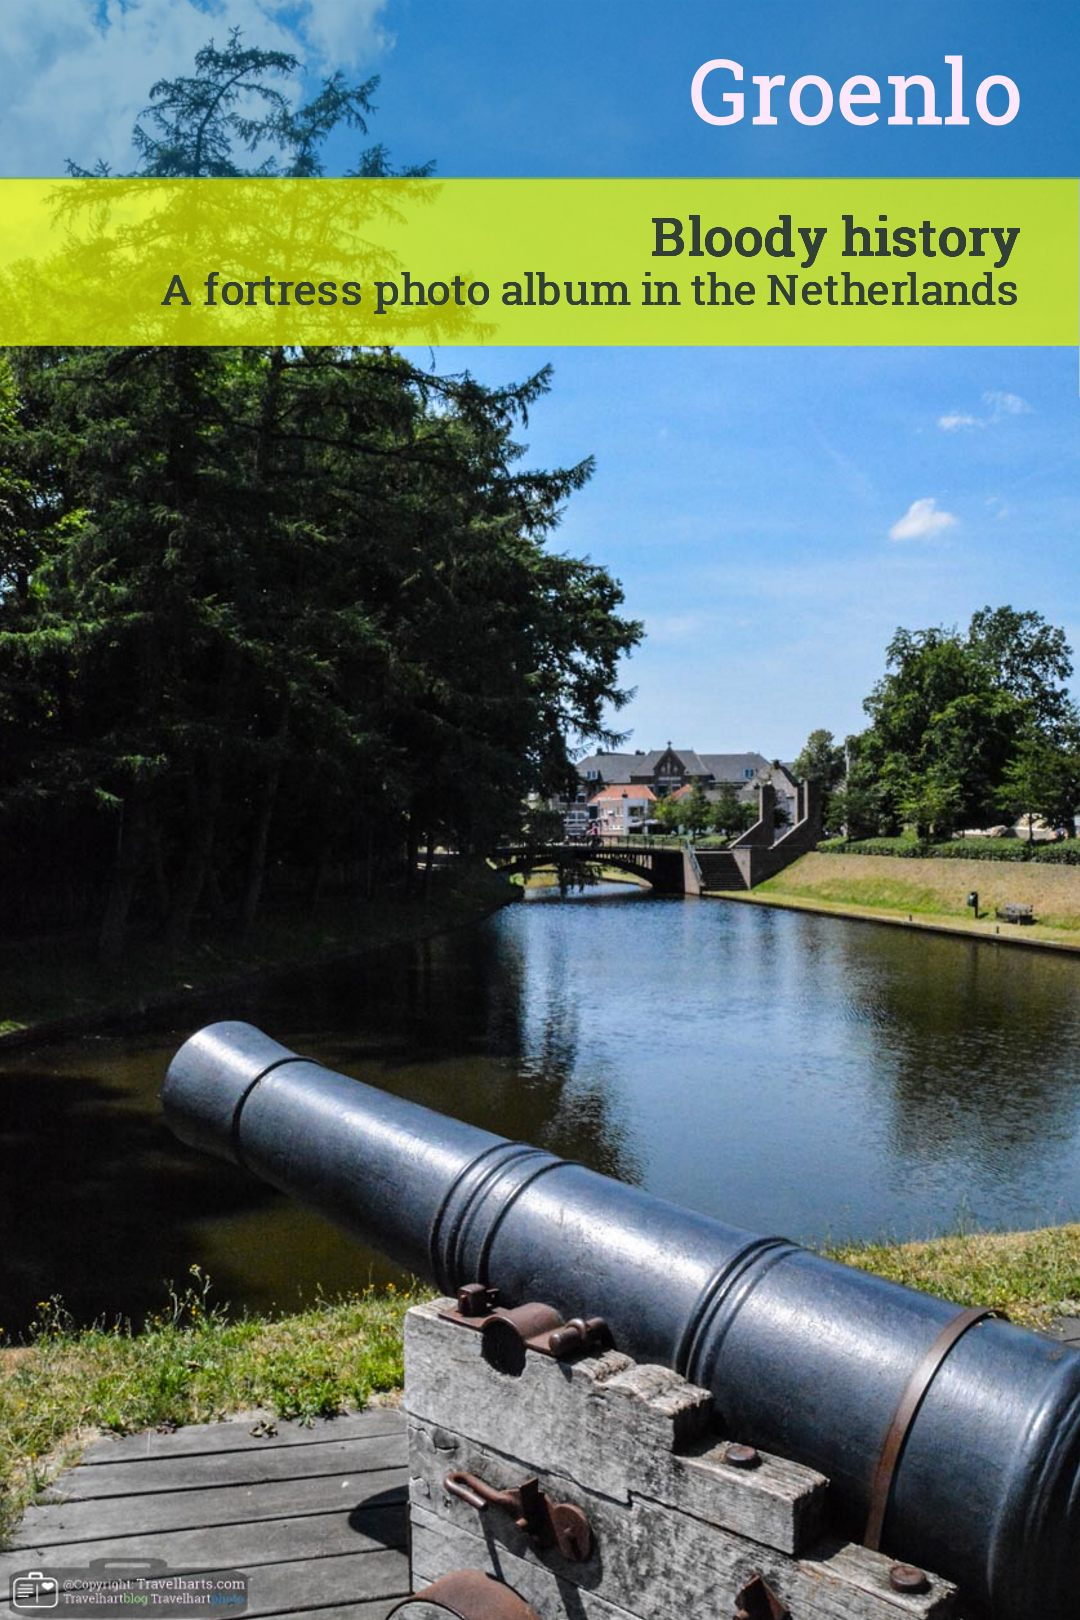 Groenlo's bloody history – The Netherlands